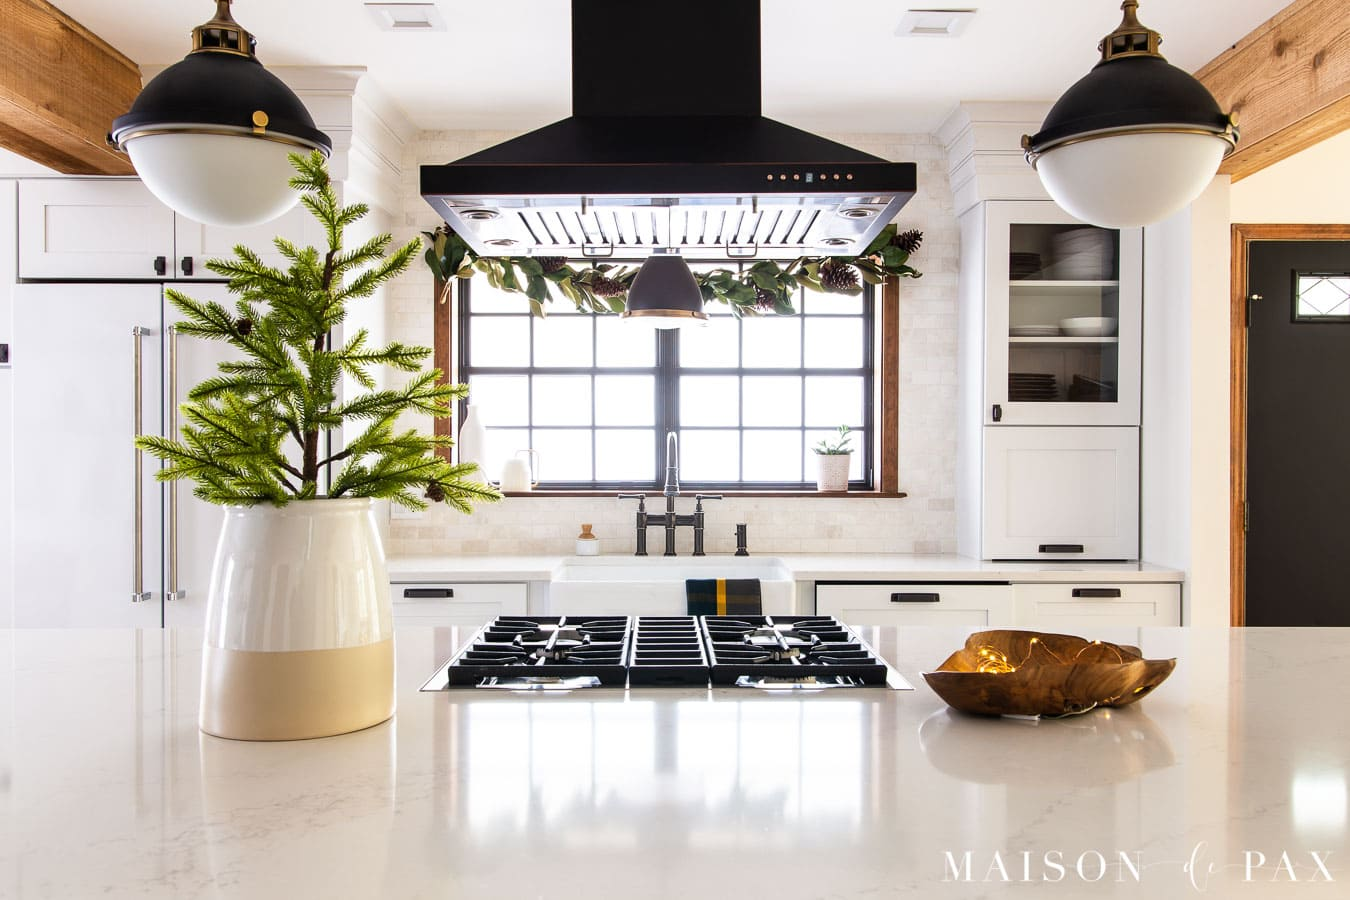 mini pine tree on kitchen island | Maison de Pax